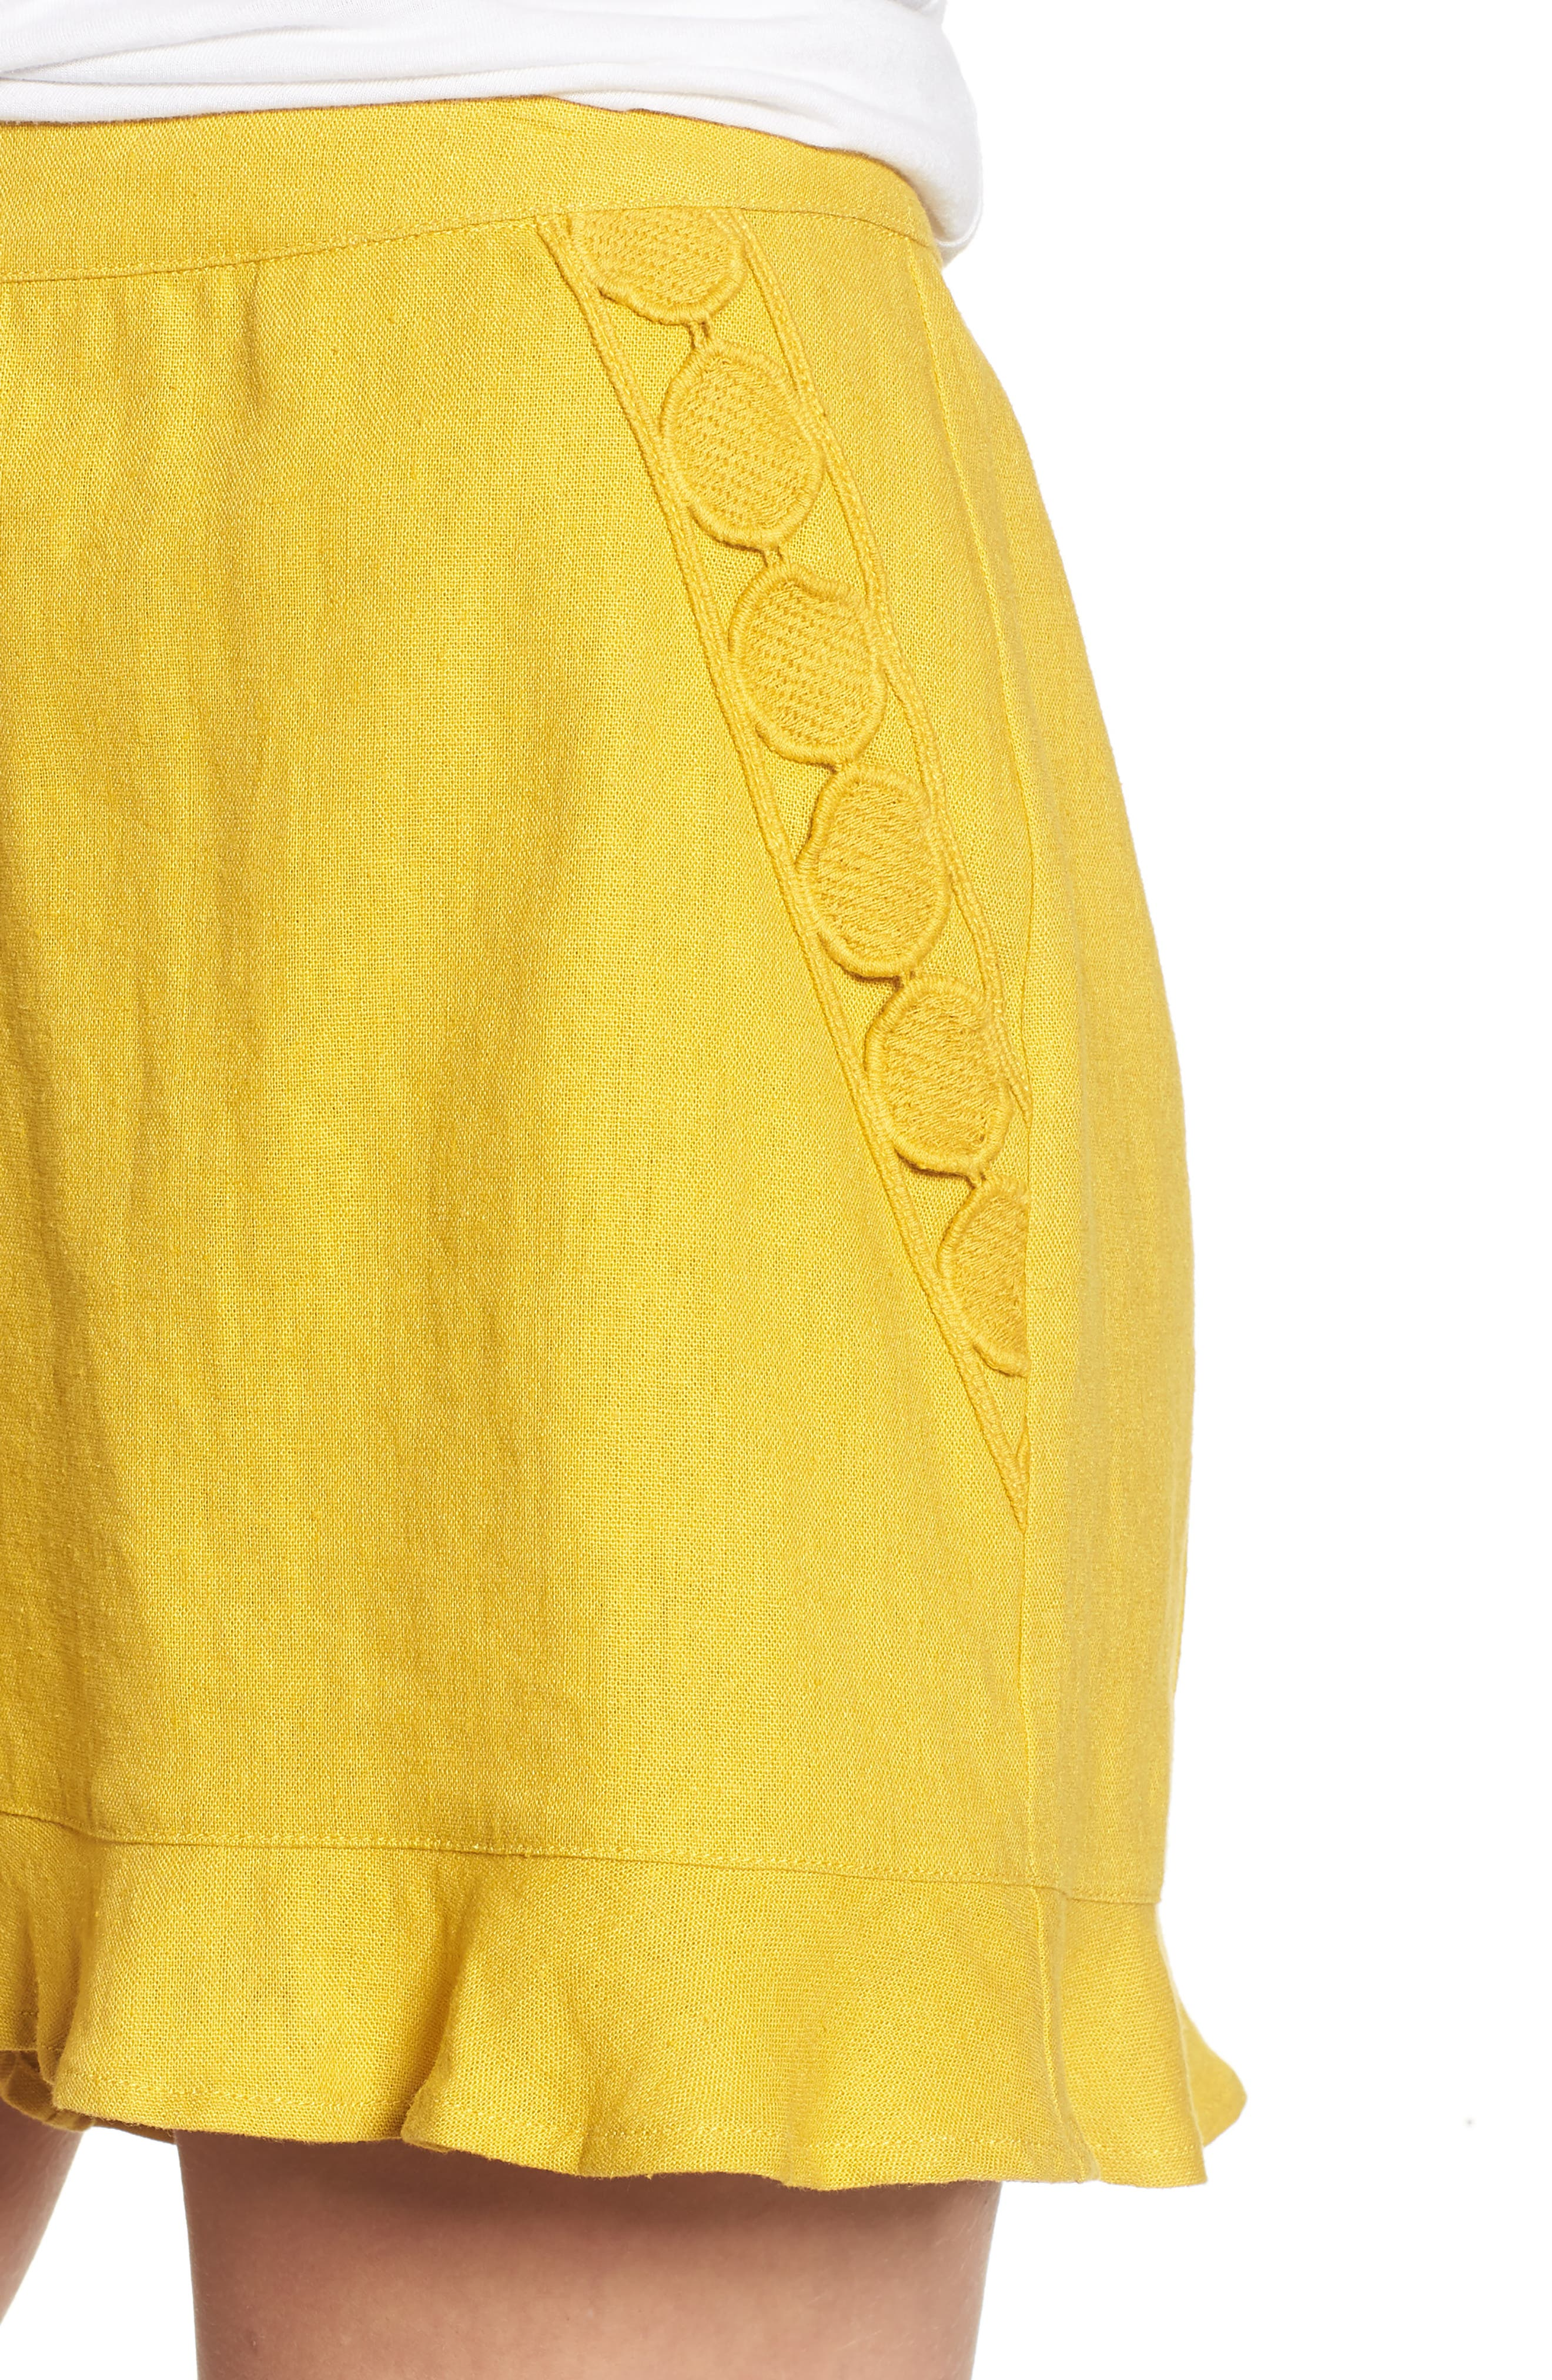 High Rise Ruffle Shorts,                             Alternate thumbnail 4, color,                             Mustard